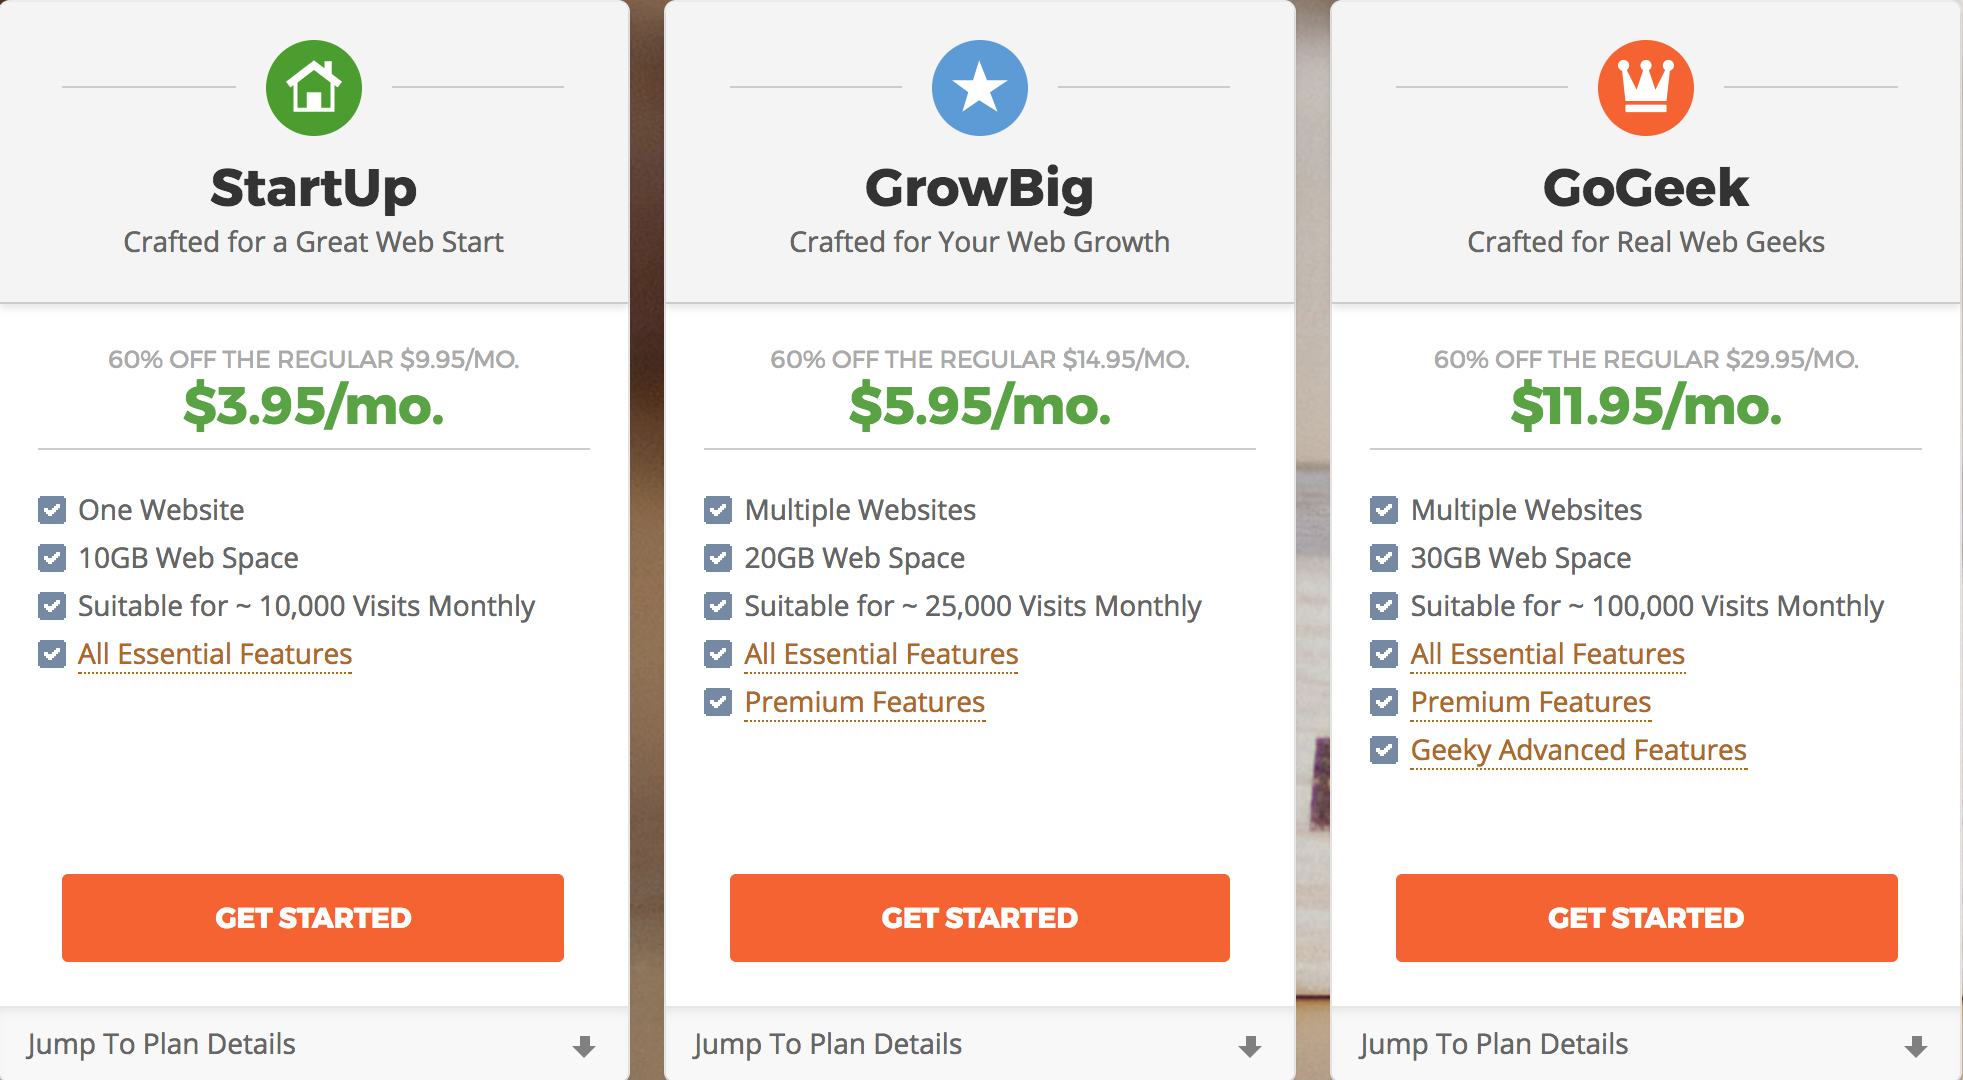 Struggling to understand web hosting for your blog? Unsure if Bluehost or Siteground is the better option? Check out this simplified overview of site hosting along with a side by side comparison of Bluehost and Siteground's features!